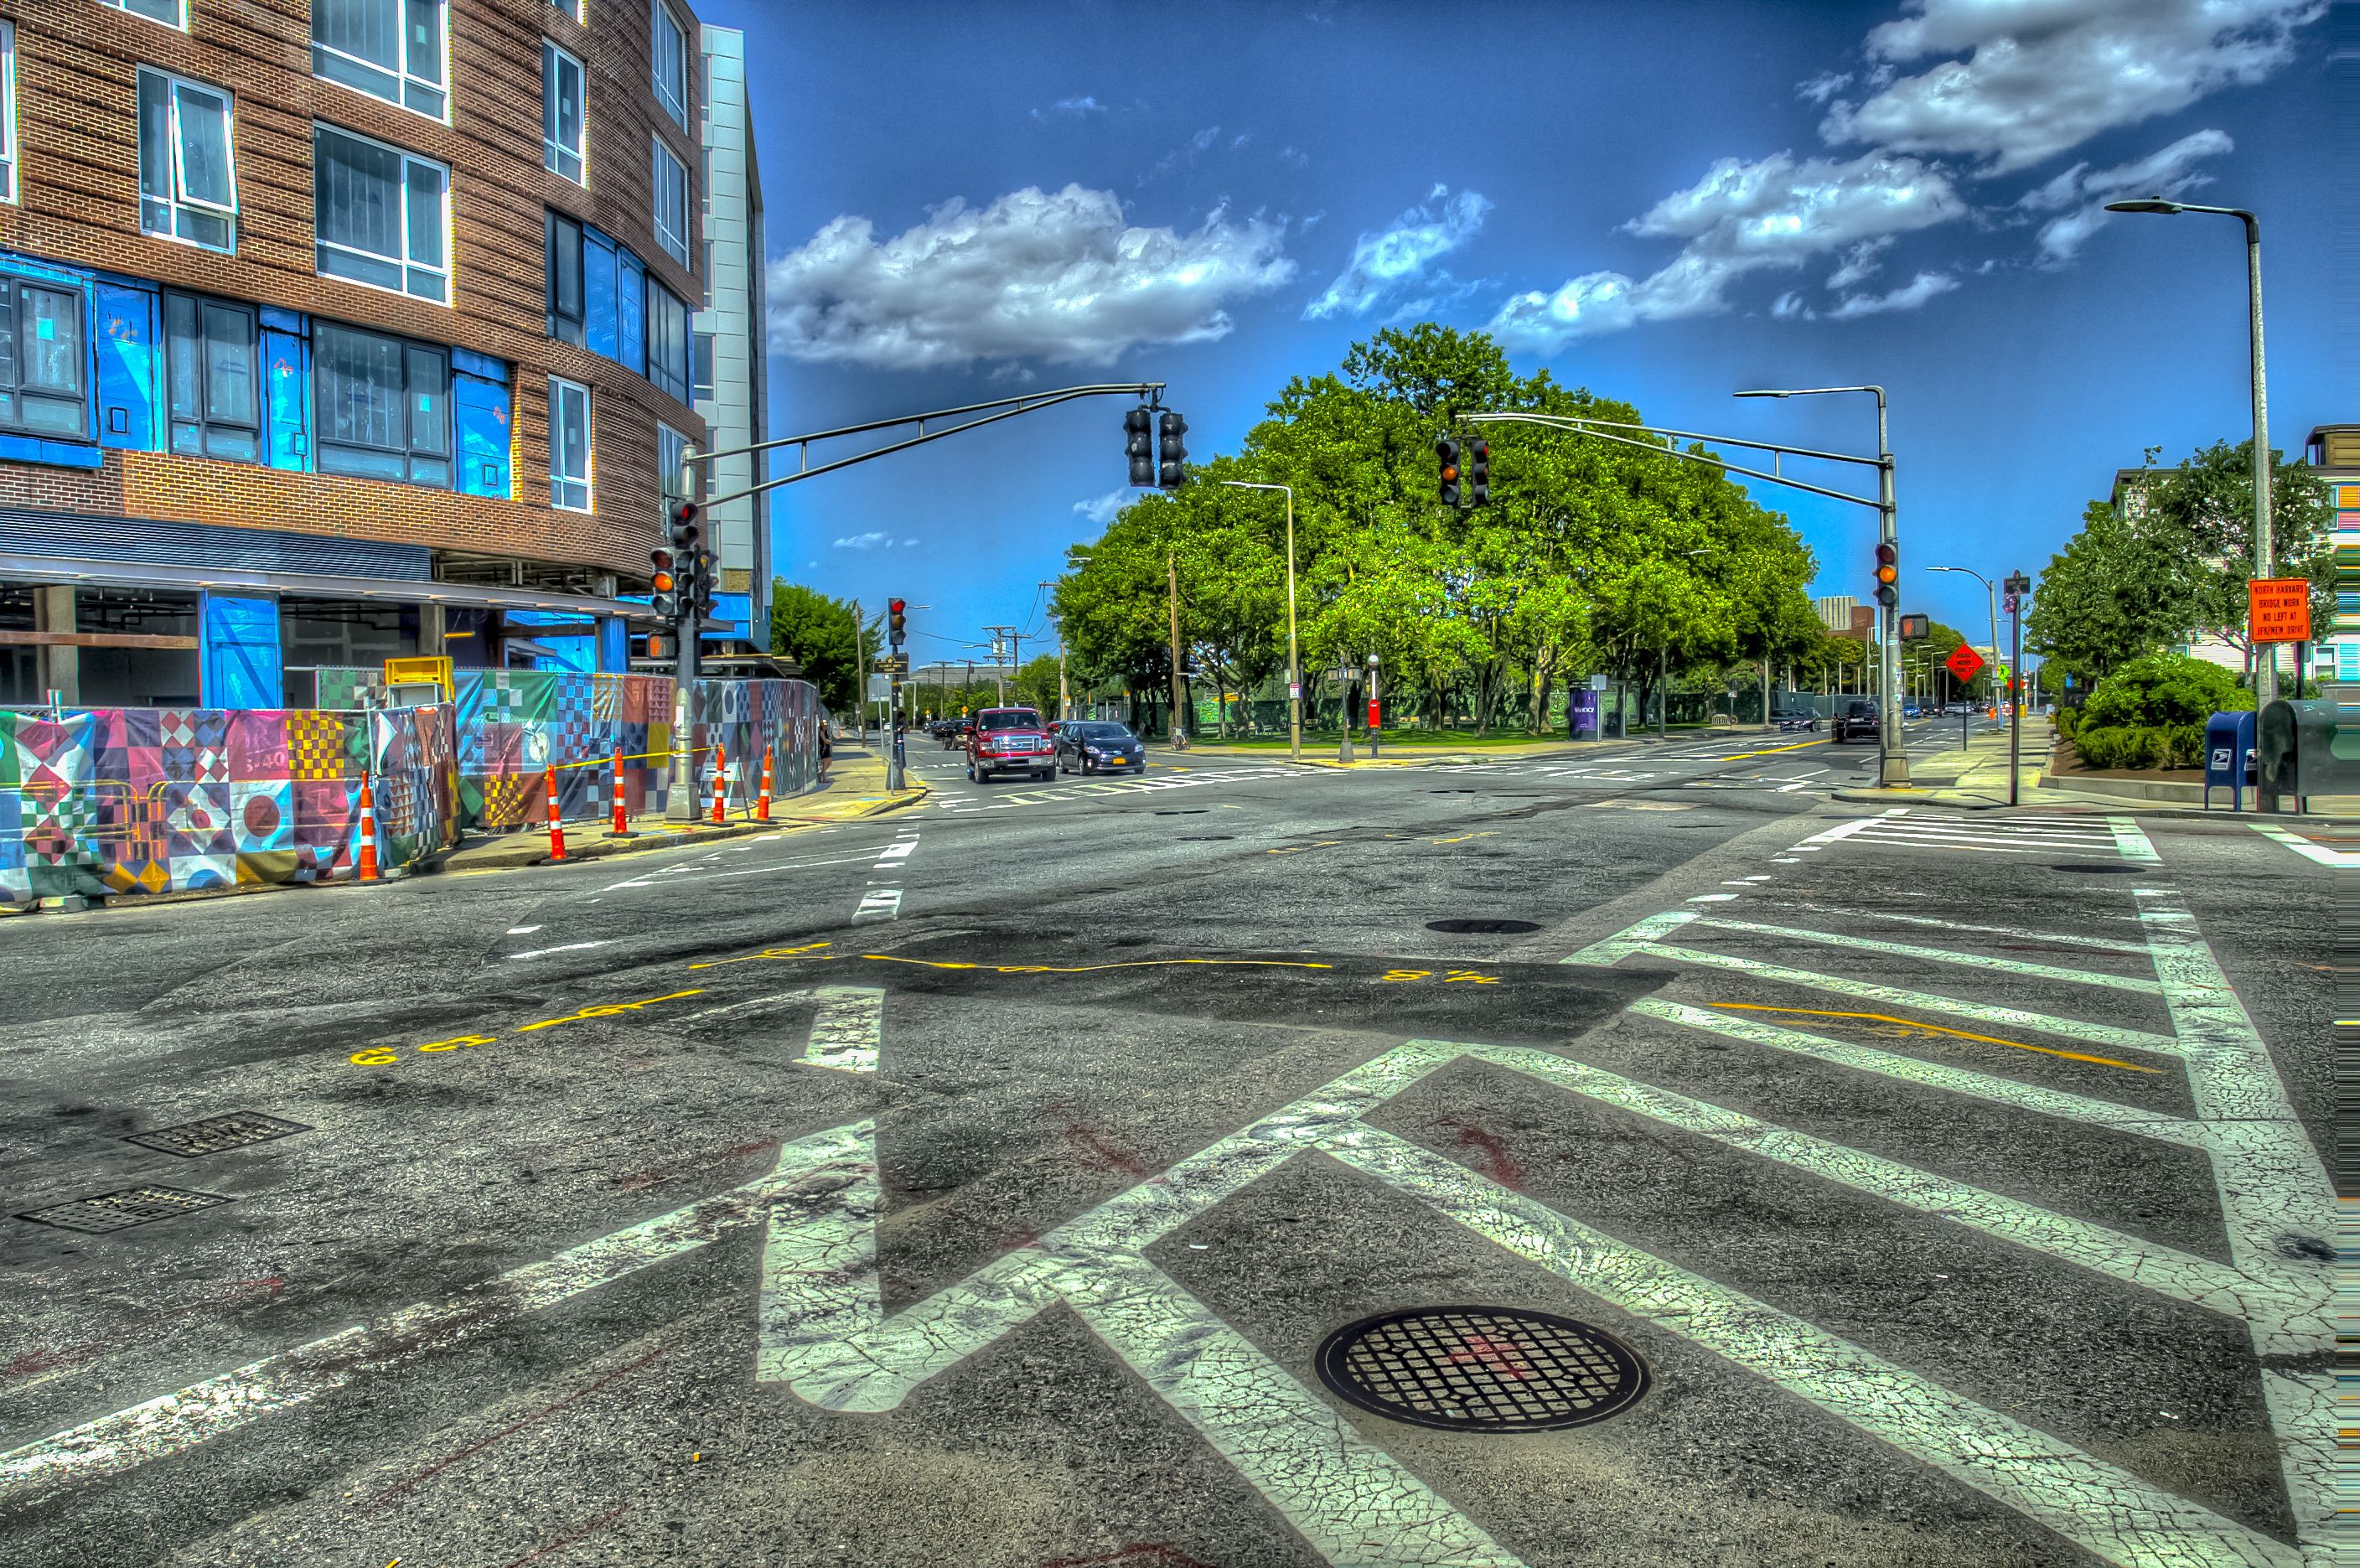 an intersection in Allston